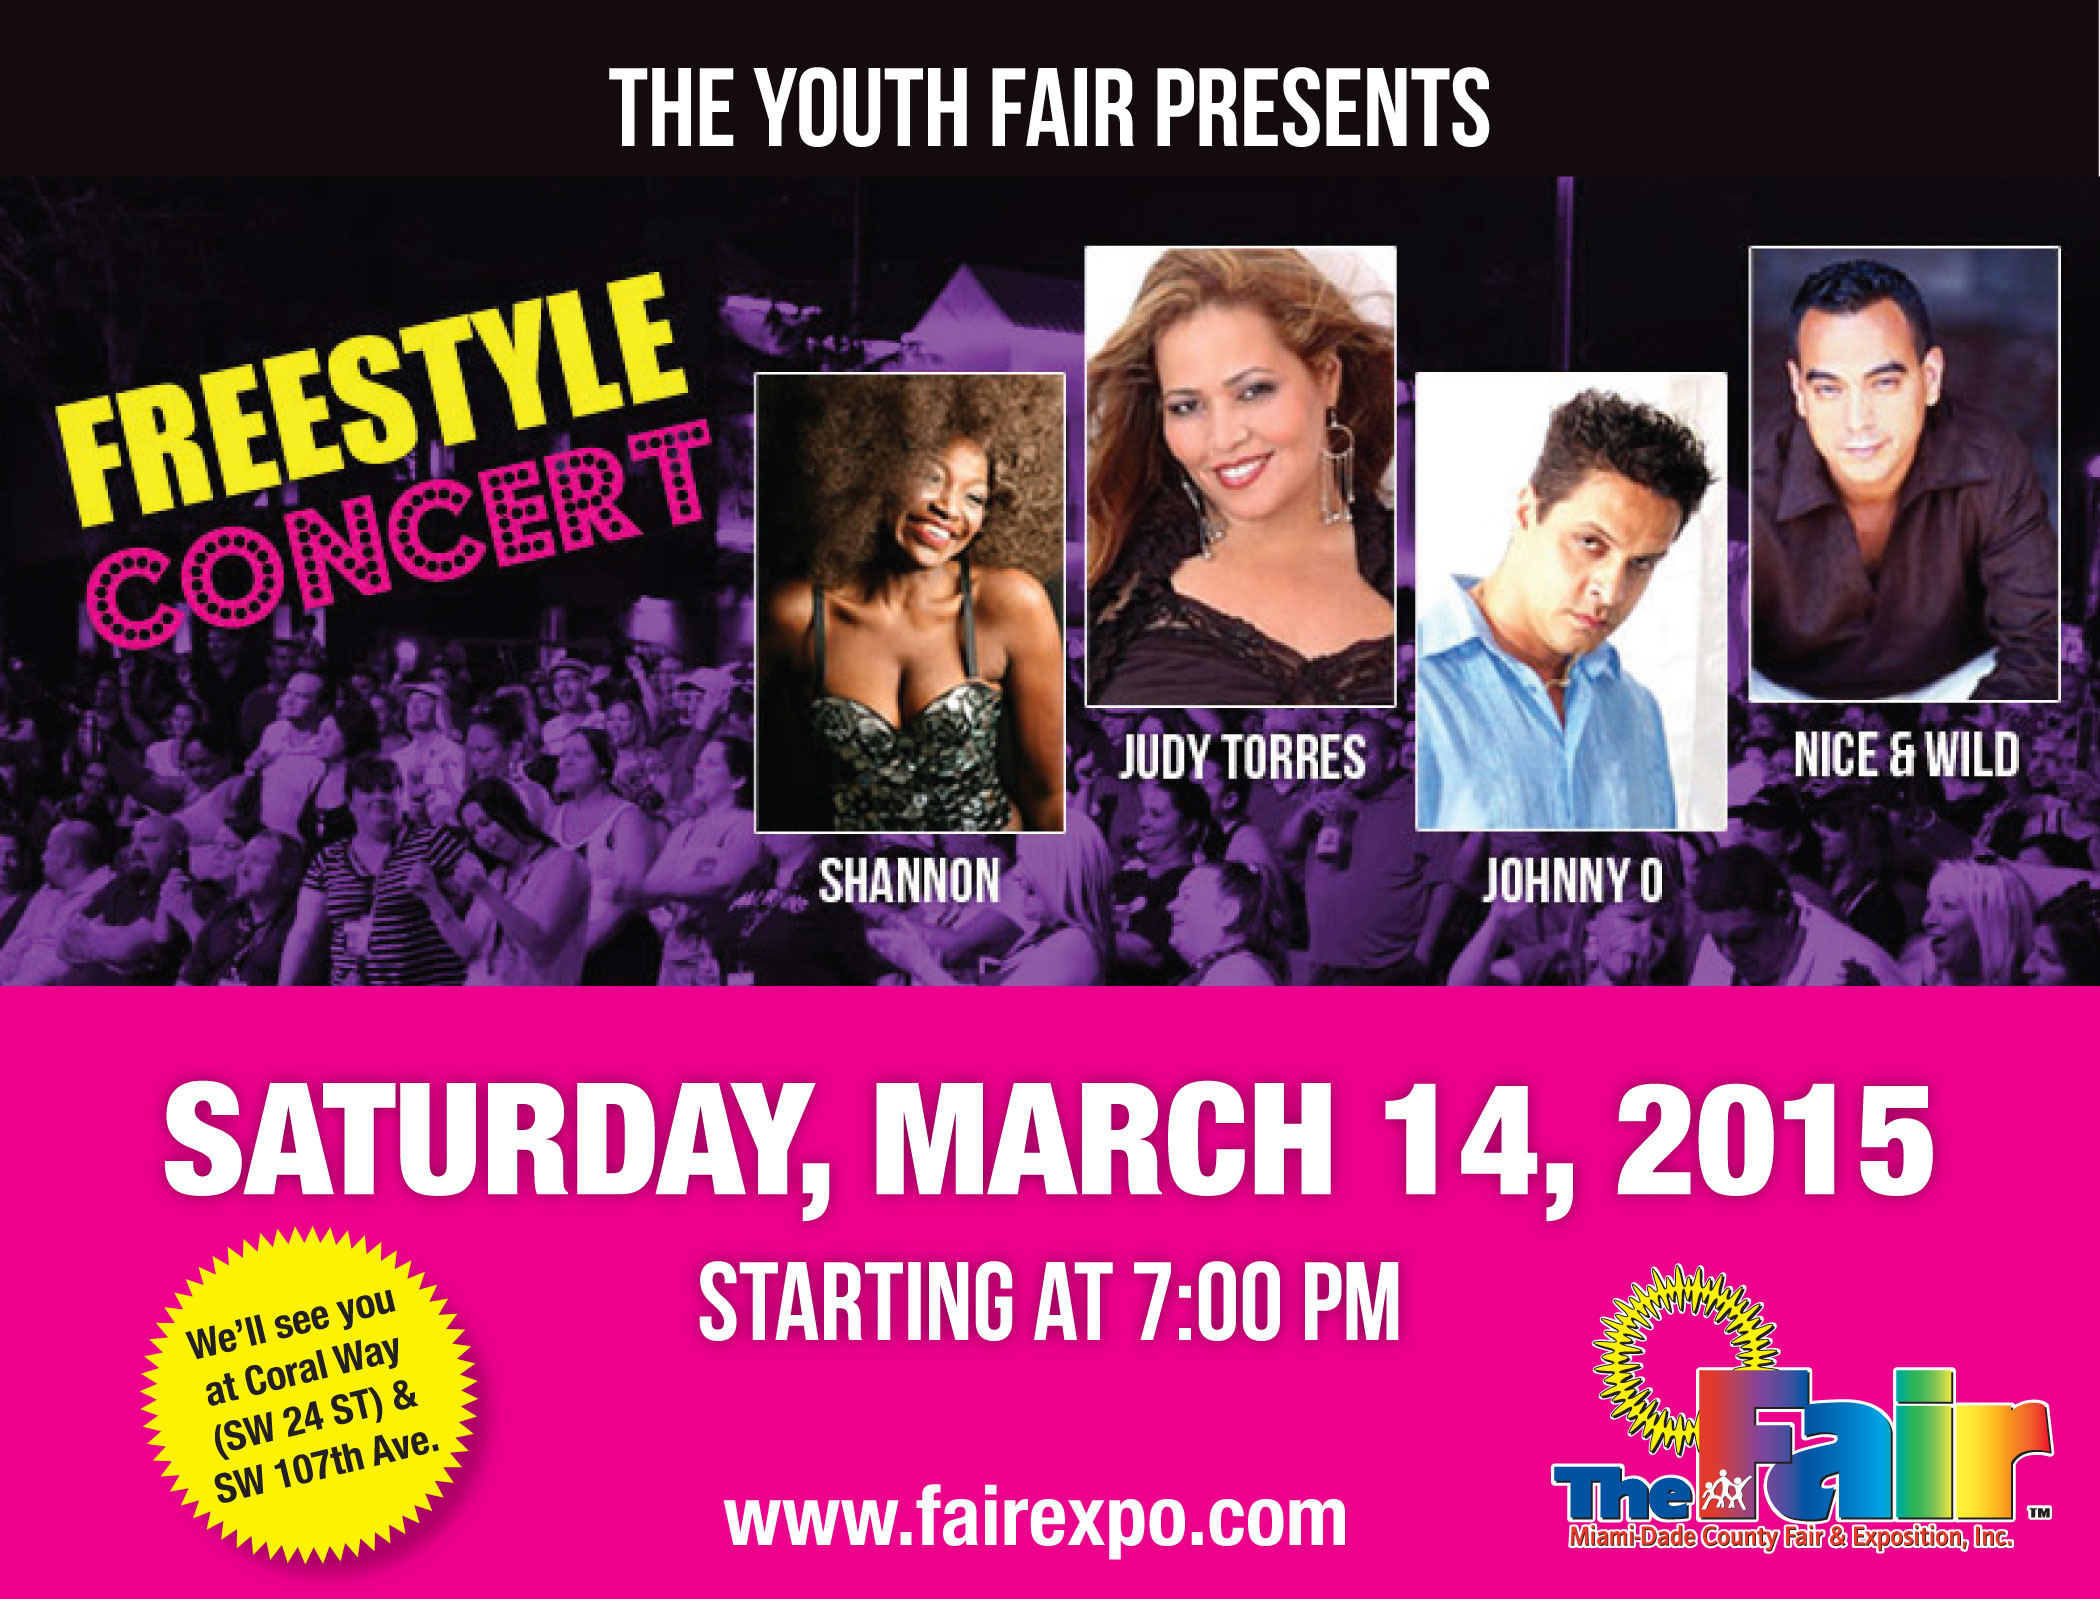 Miami-Dade County Youth Fair Freestyle Concert – March 14, 2015 7pm-10pm